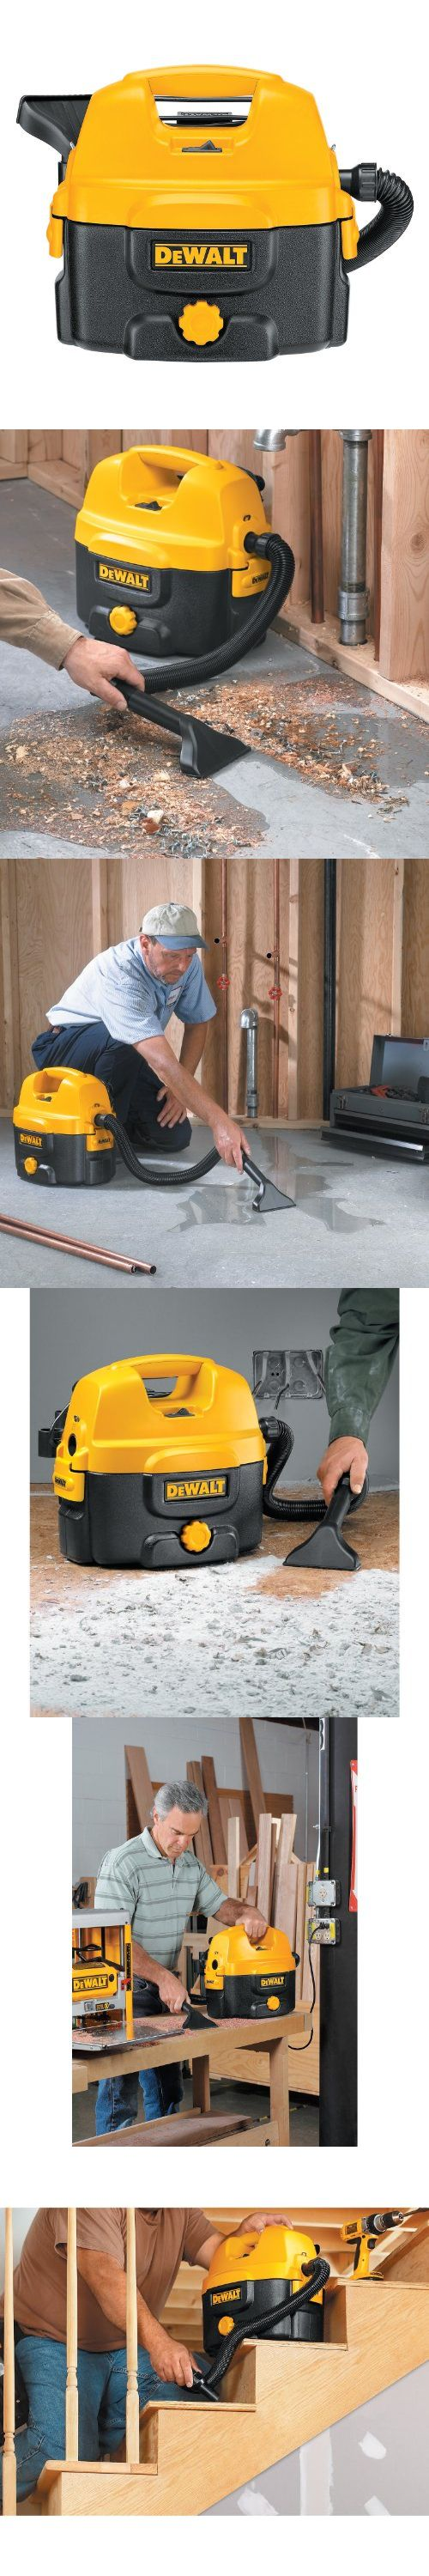 25 Best Ideas About Dewalt Tools On Pinterest Dewalt